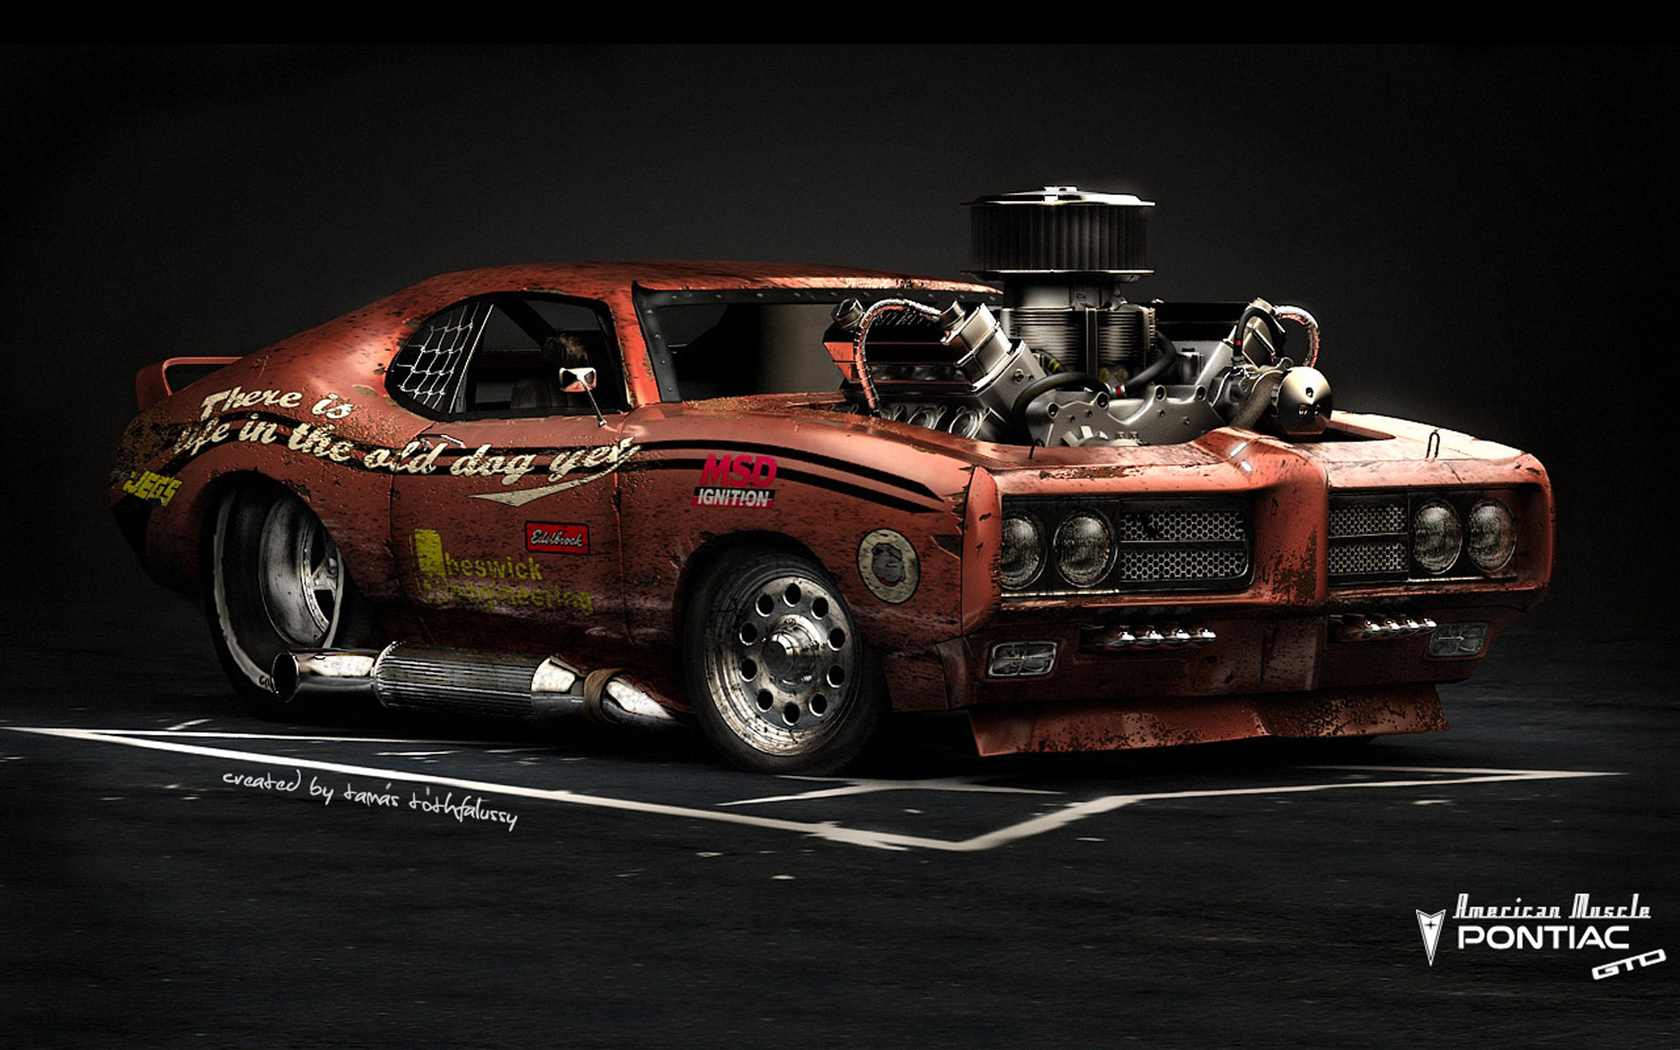 pontiac gto, american muscle, hot rod, car